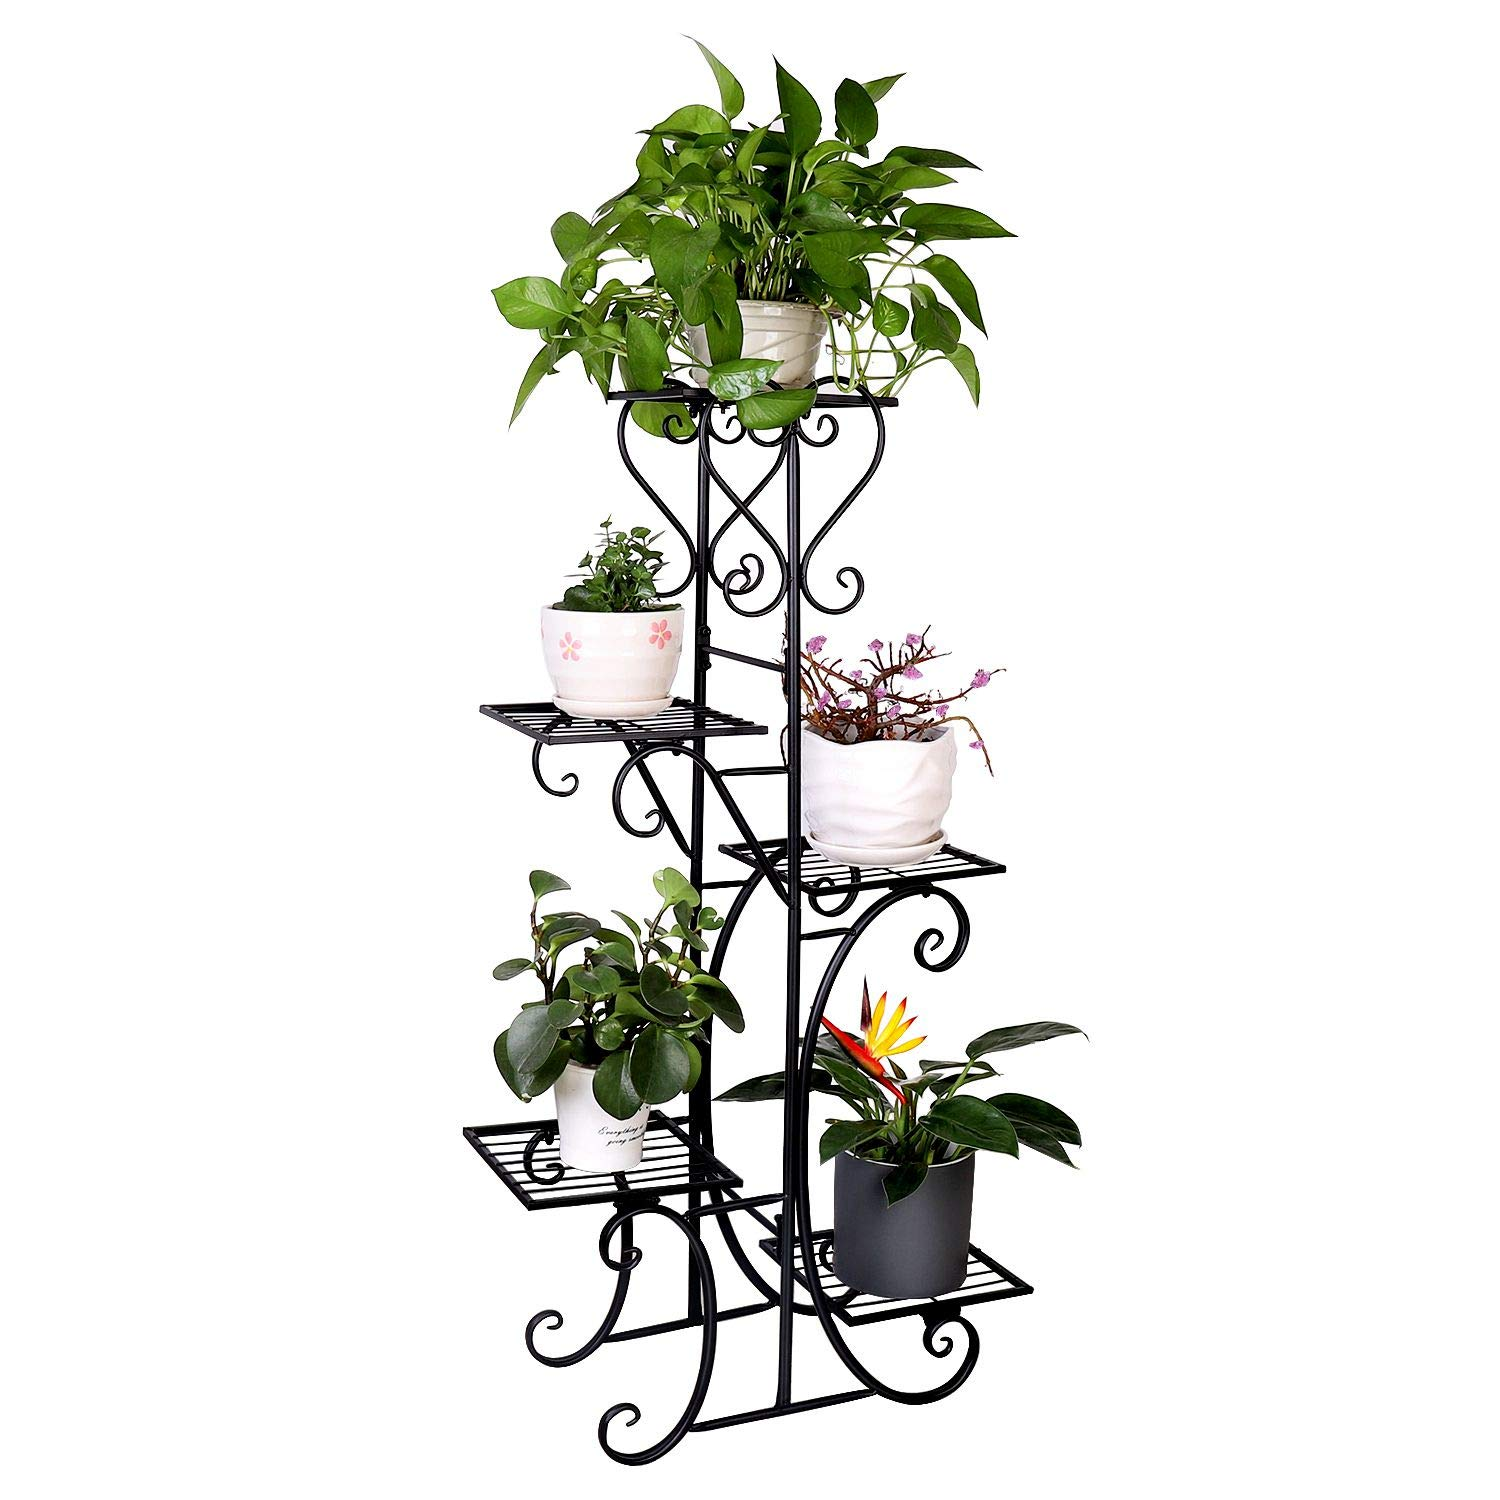 Tall Metal Plant Stand Indoor Outdoor 5 Tier Flower Pot Holder Garden Wrought Iron Planter Shelf Rack Black by unho